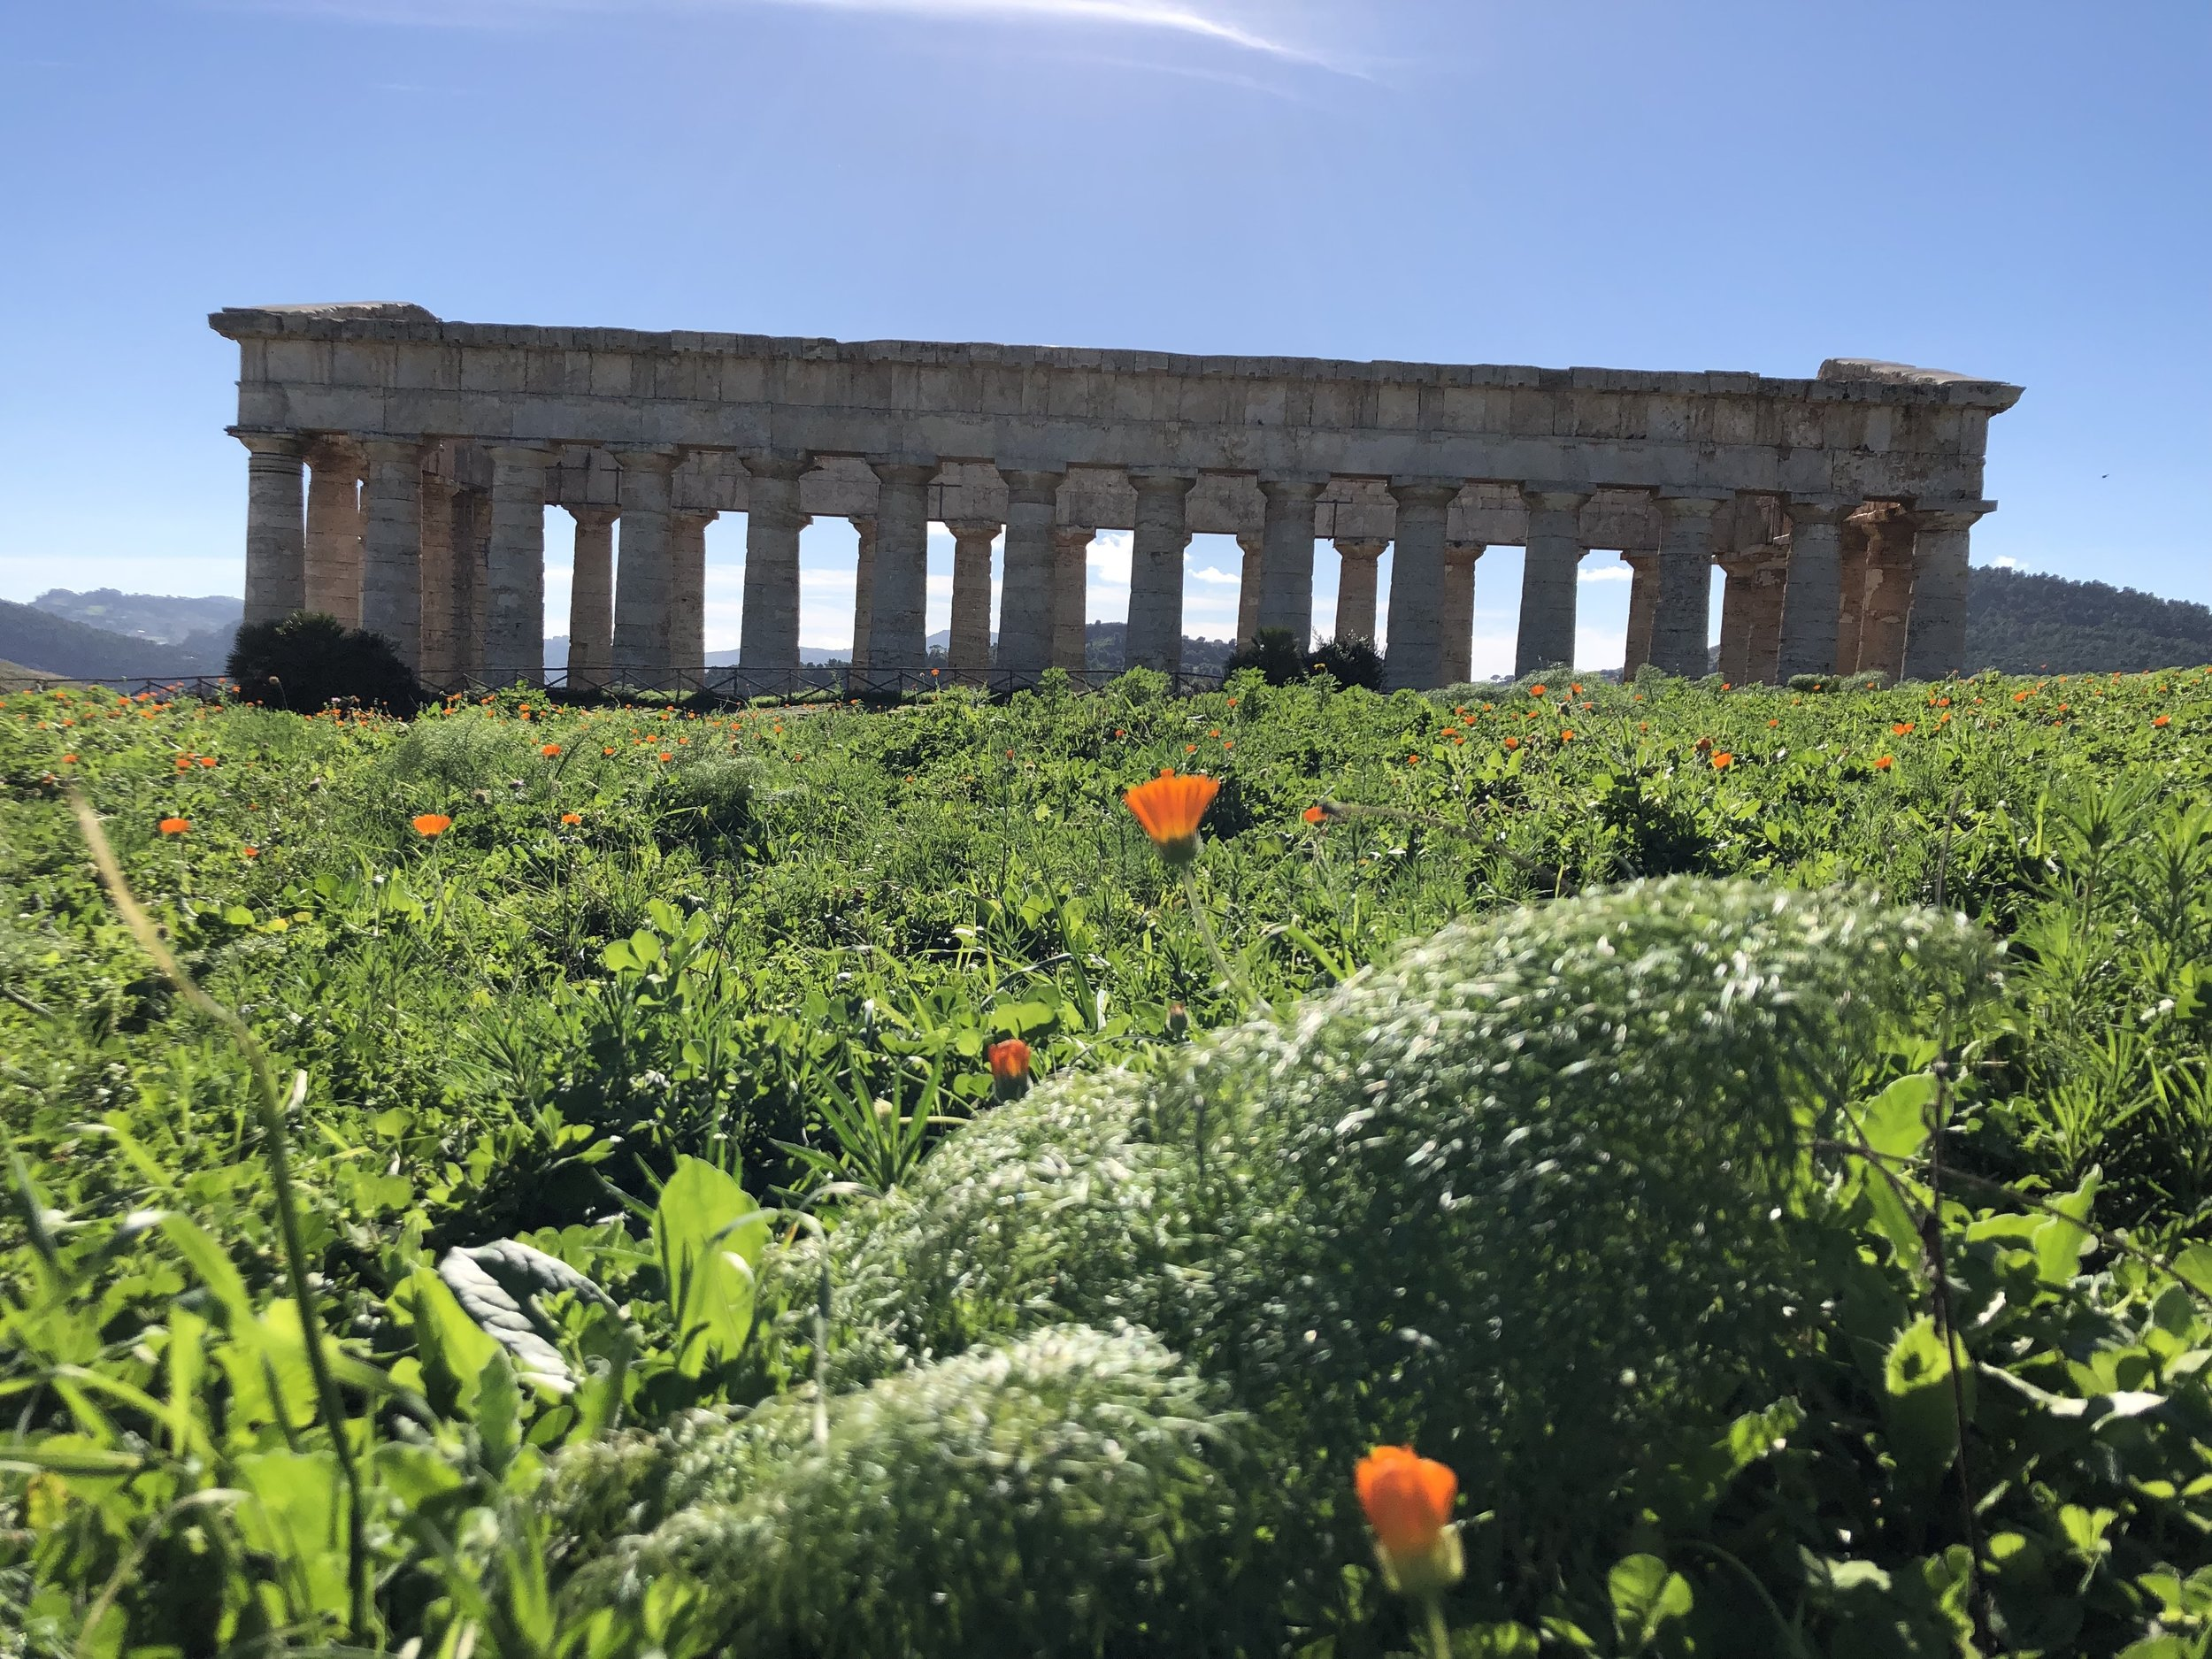 - DETAILS COMING SOON!SICILY WRITING INTENSIVE: WRITE LIKE A MOTHER Generative Writing Retreat for Fiction, Creative Nonfiction & Mixed GenreNovember 2020DATES TO BE ANNOUNCED IN FALL 2019Led by Kate Moses, with Guest Faculty Susan Straight & Reiko Rizzuto